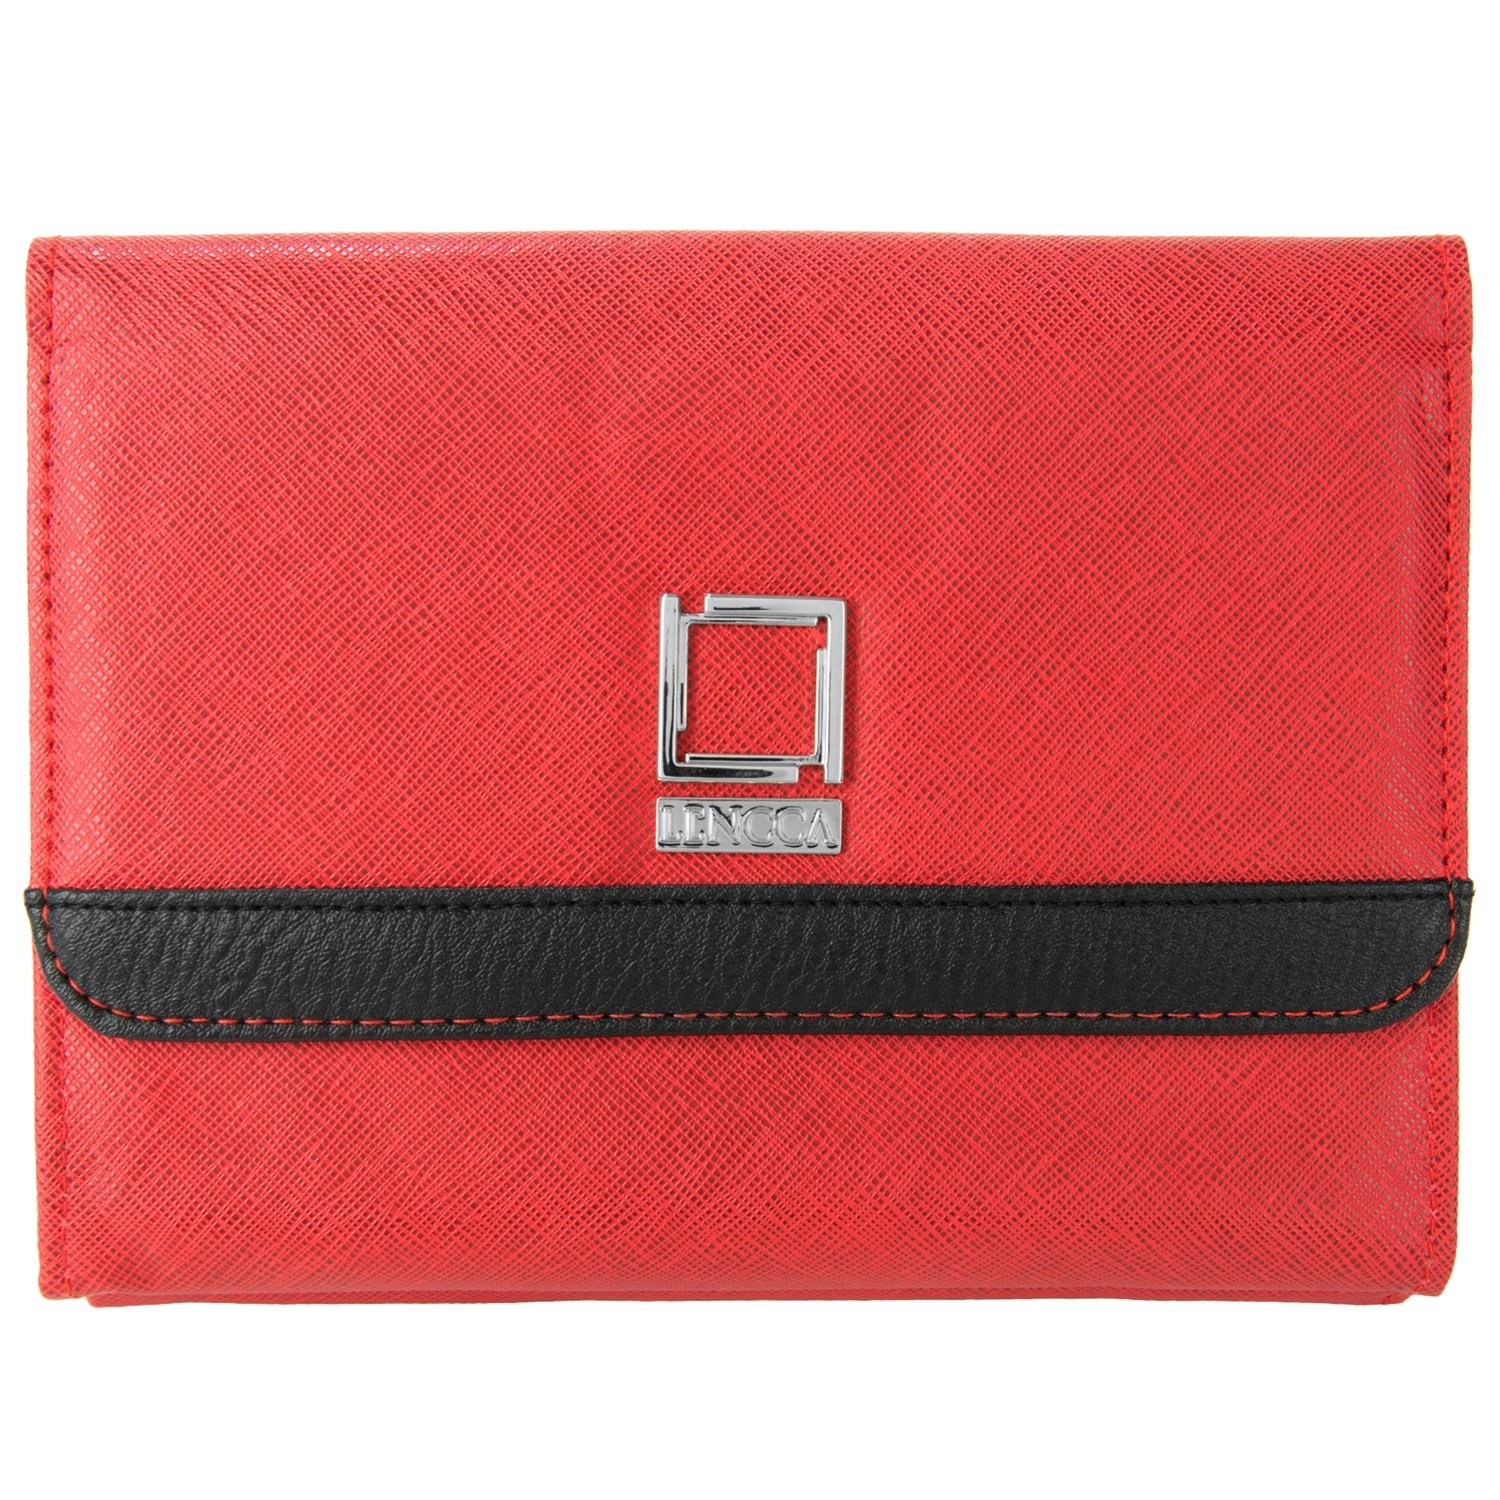 Ruby Crossbody evening Clutch for HTC Phones by Lencca